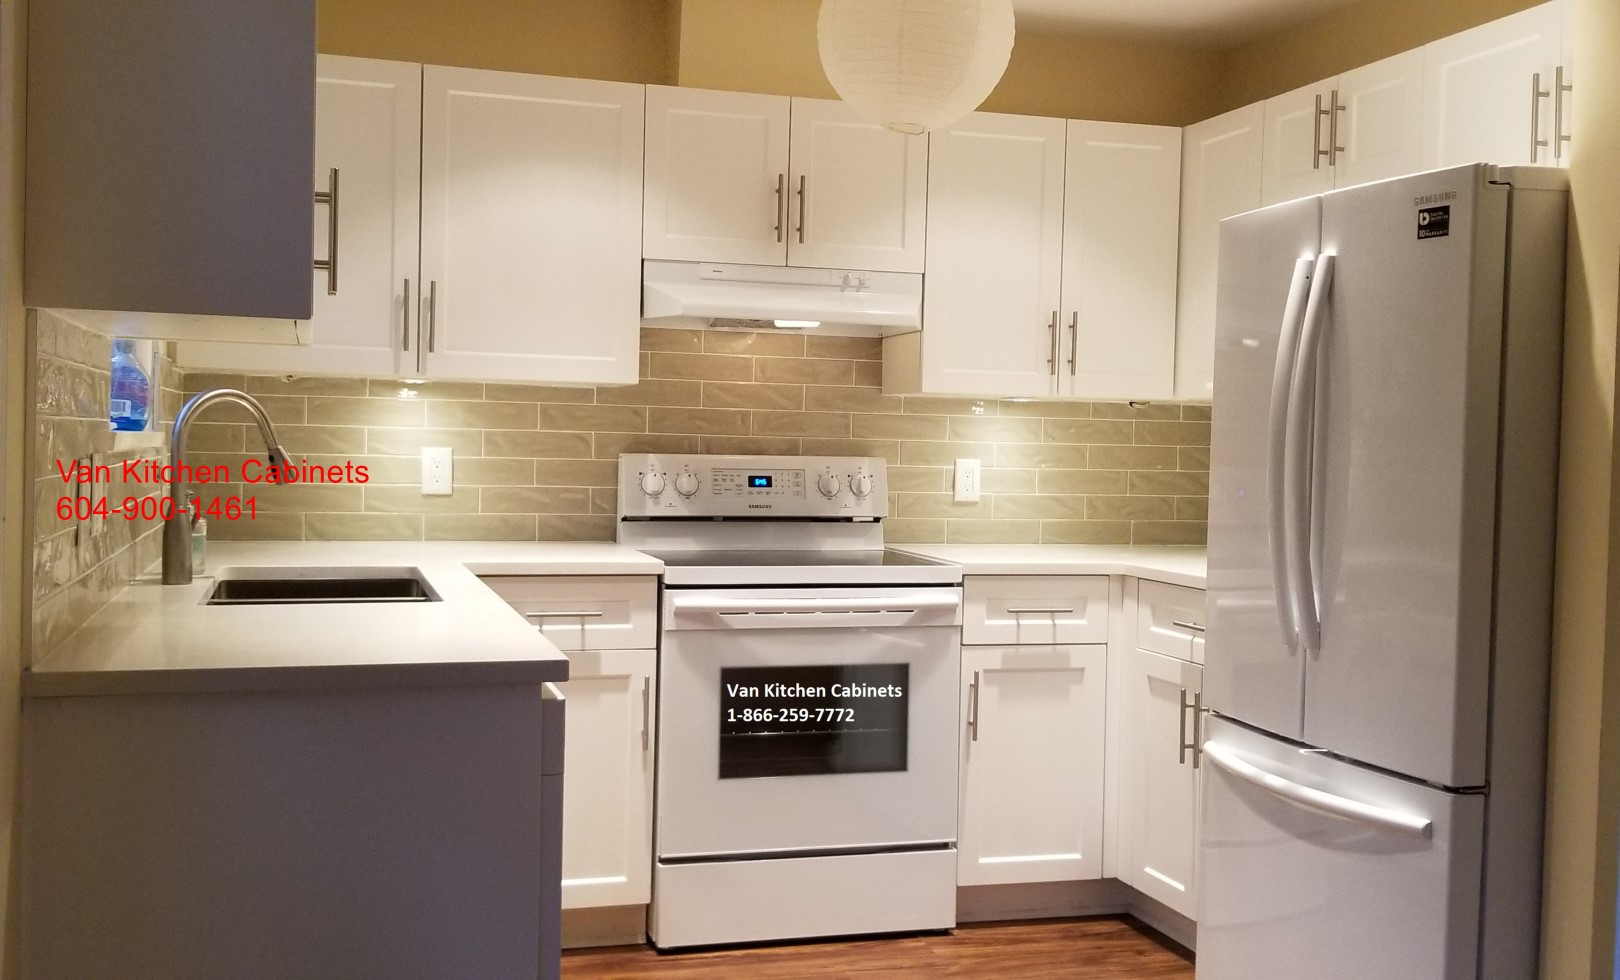 White shaker light backsplash